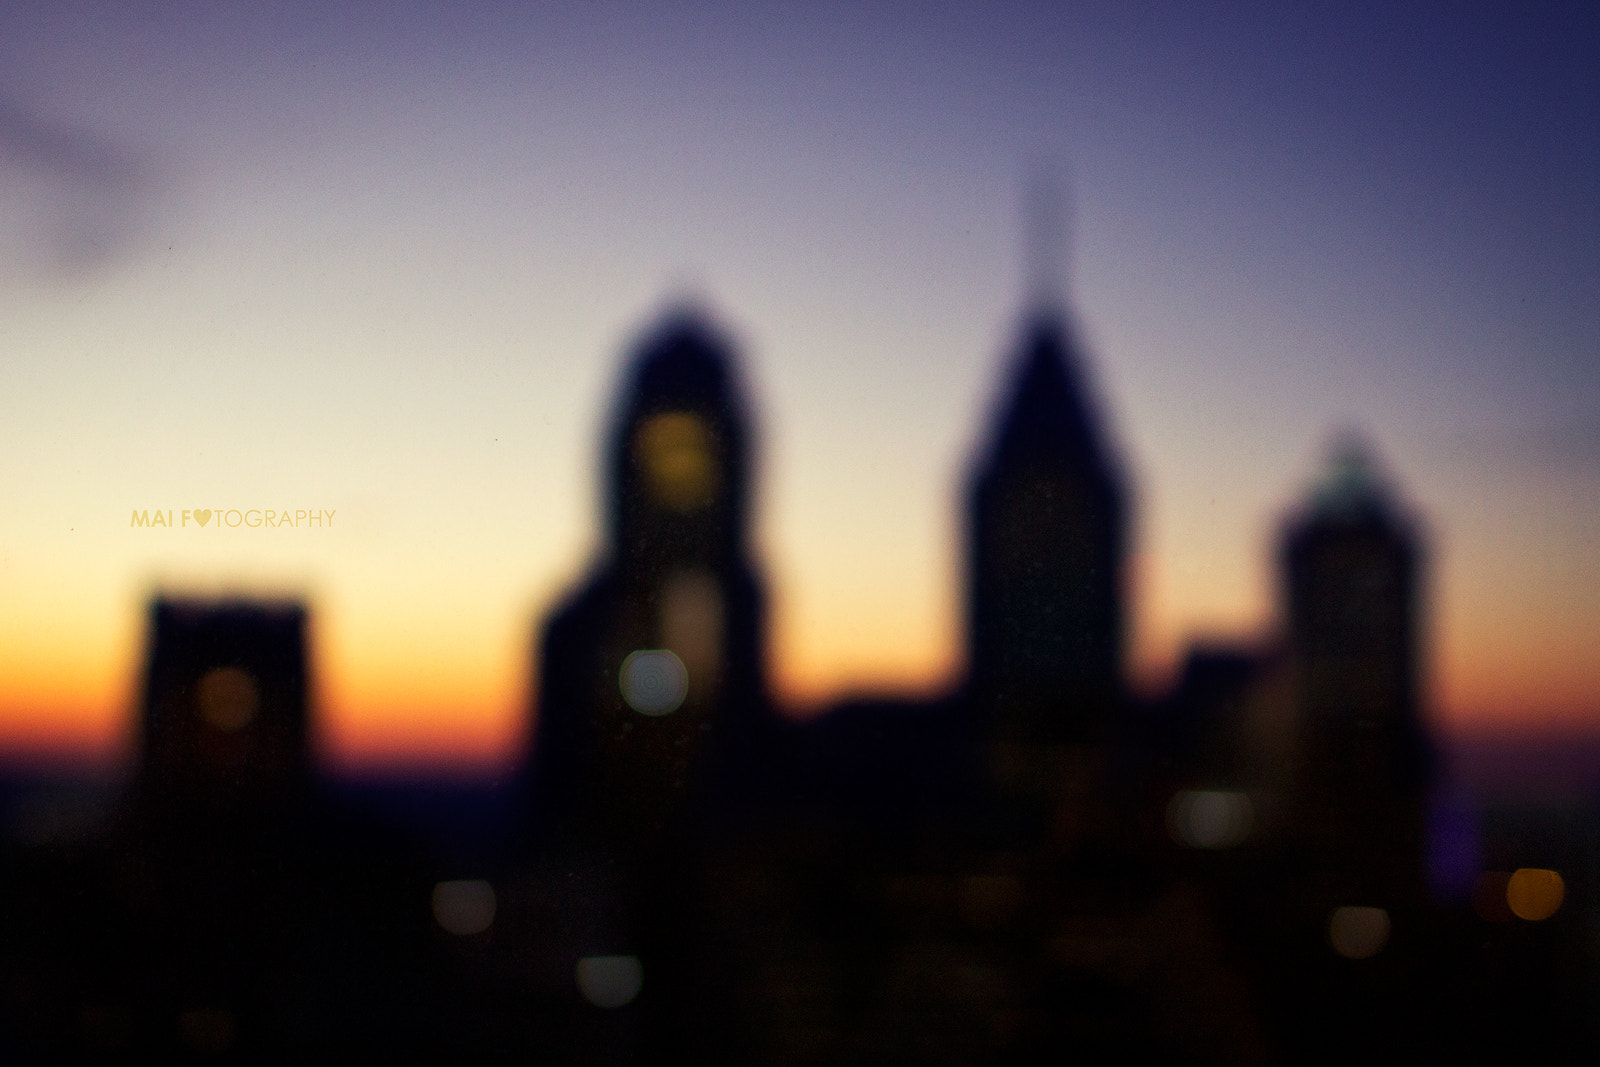 Photograph Philadelphia sunset bokeh 2 by Mai Fotography on 500px